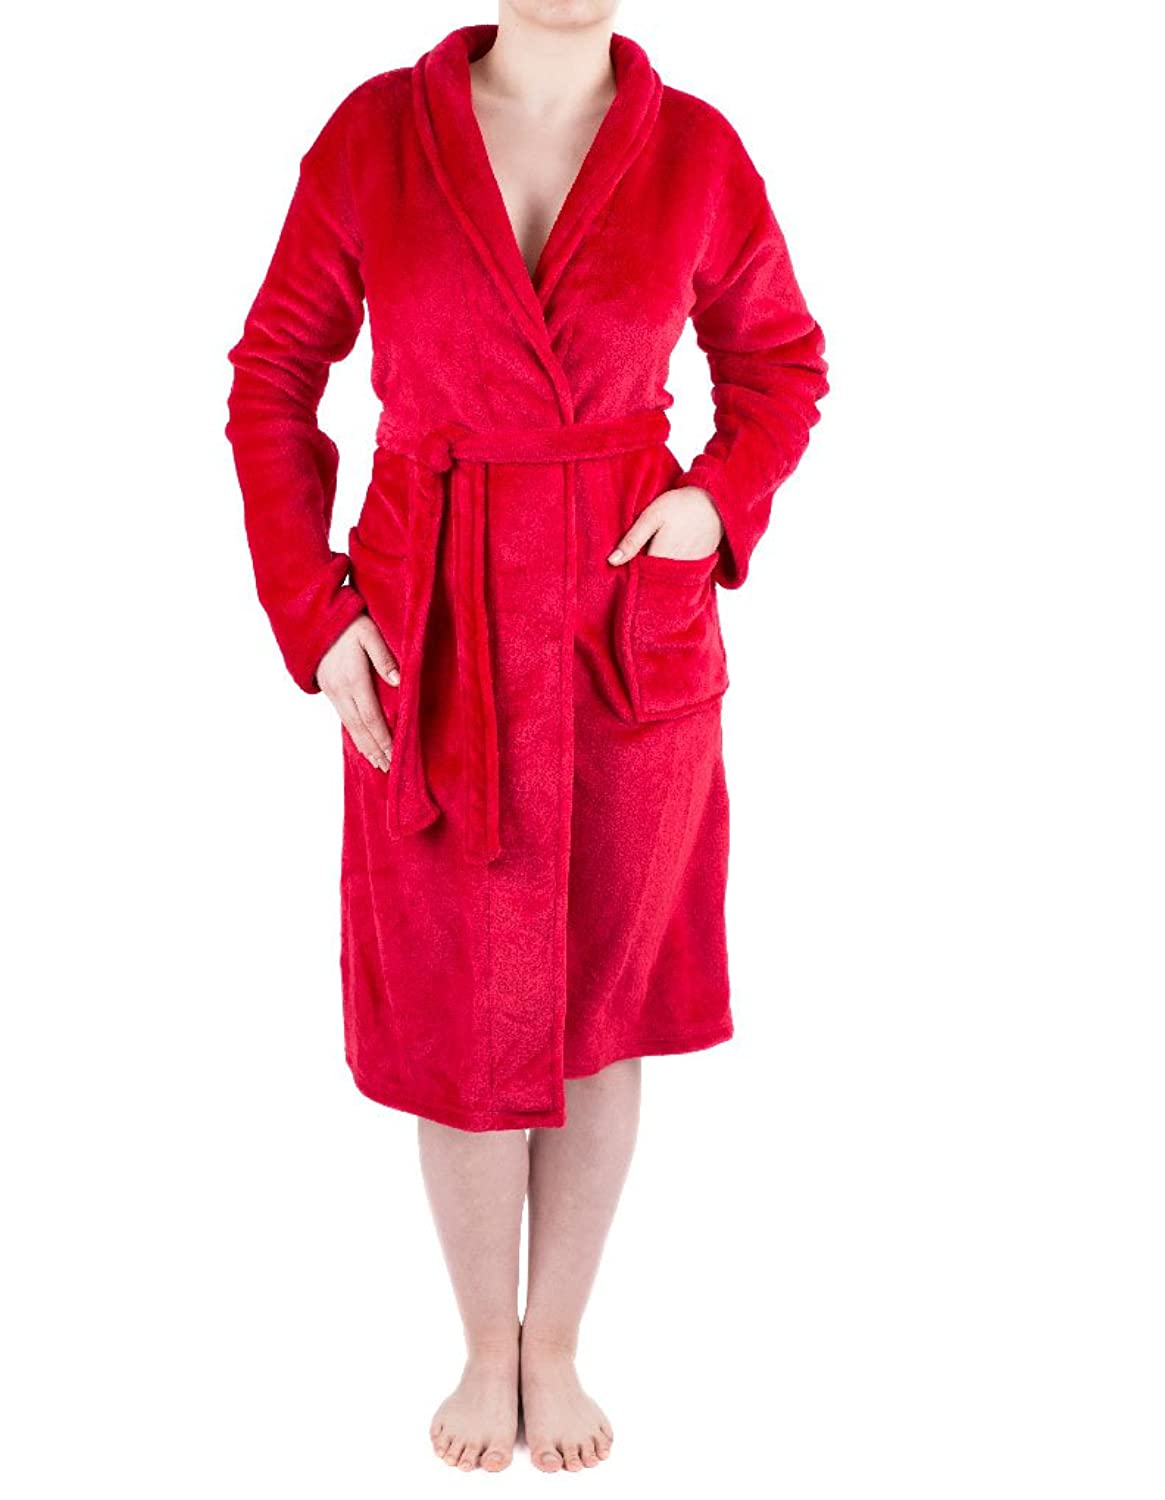 NSW Lounge Cosy Red Long Sleeve Robe 6960